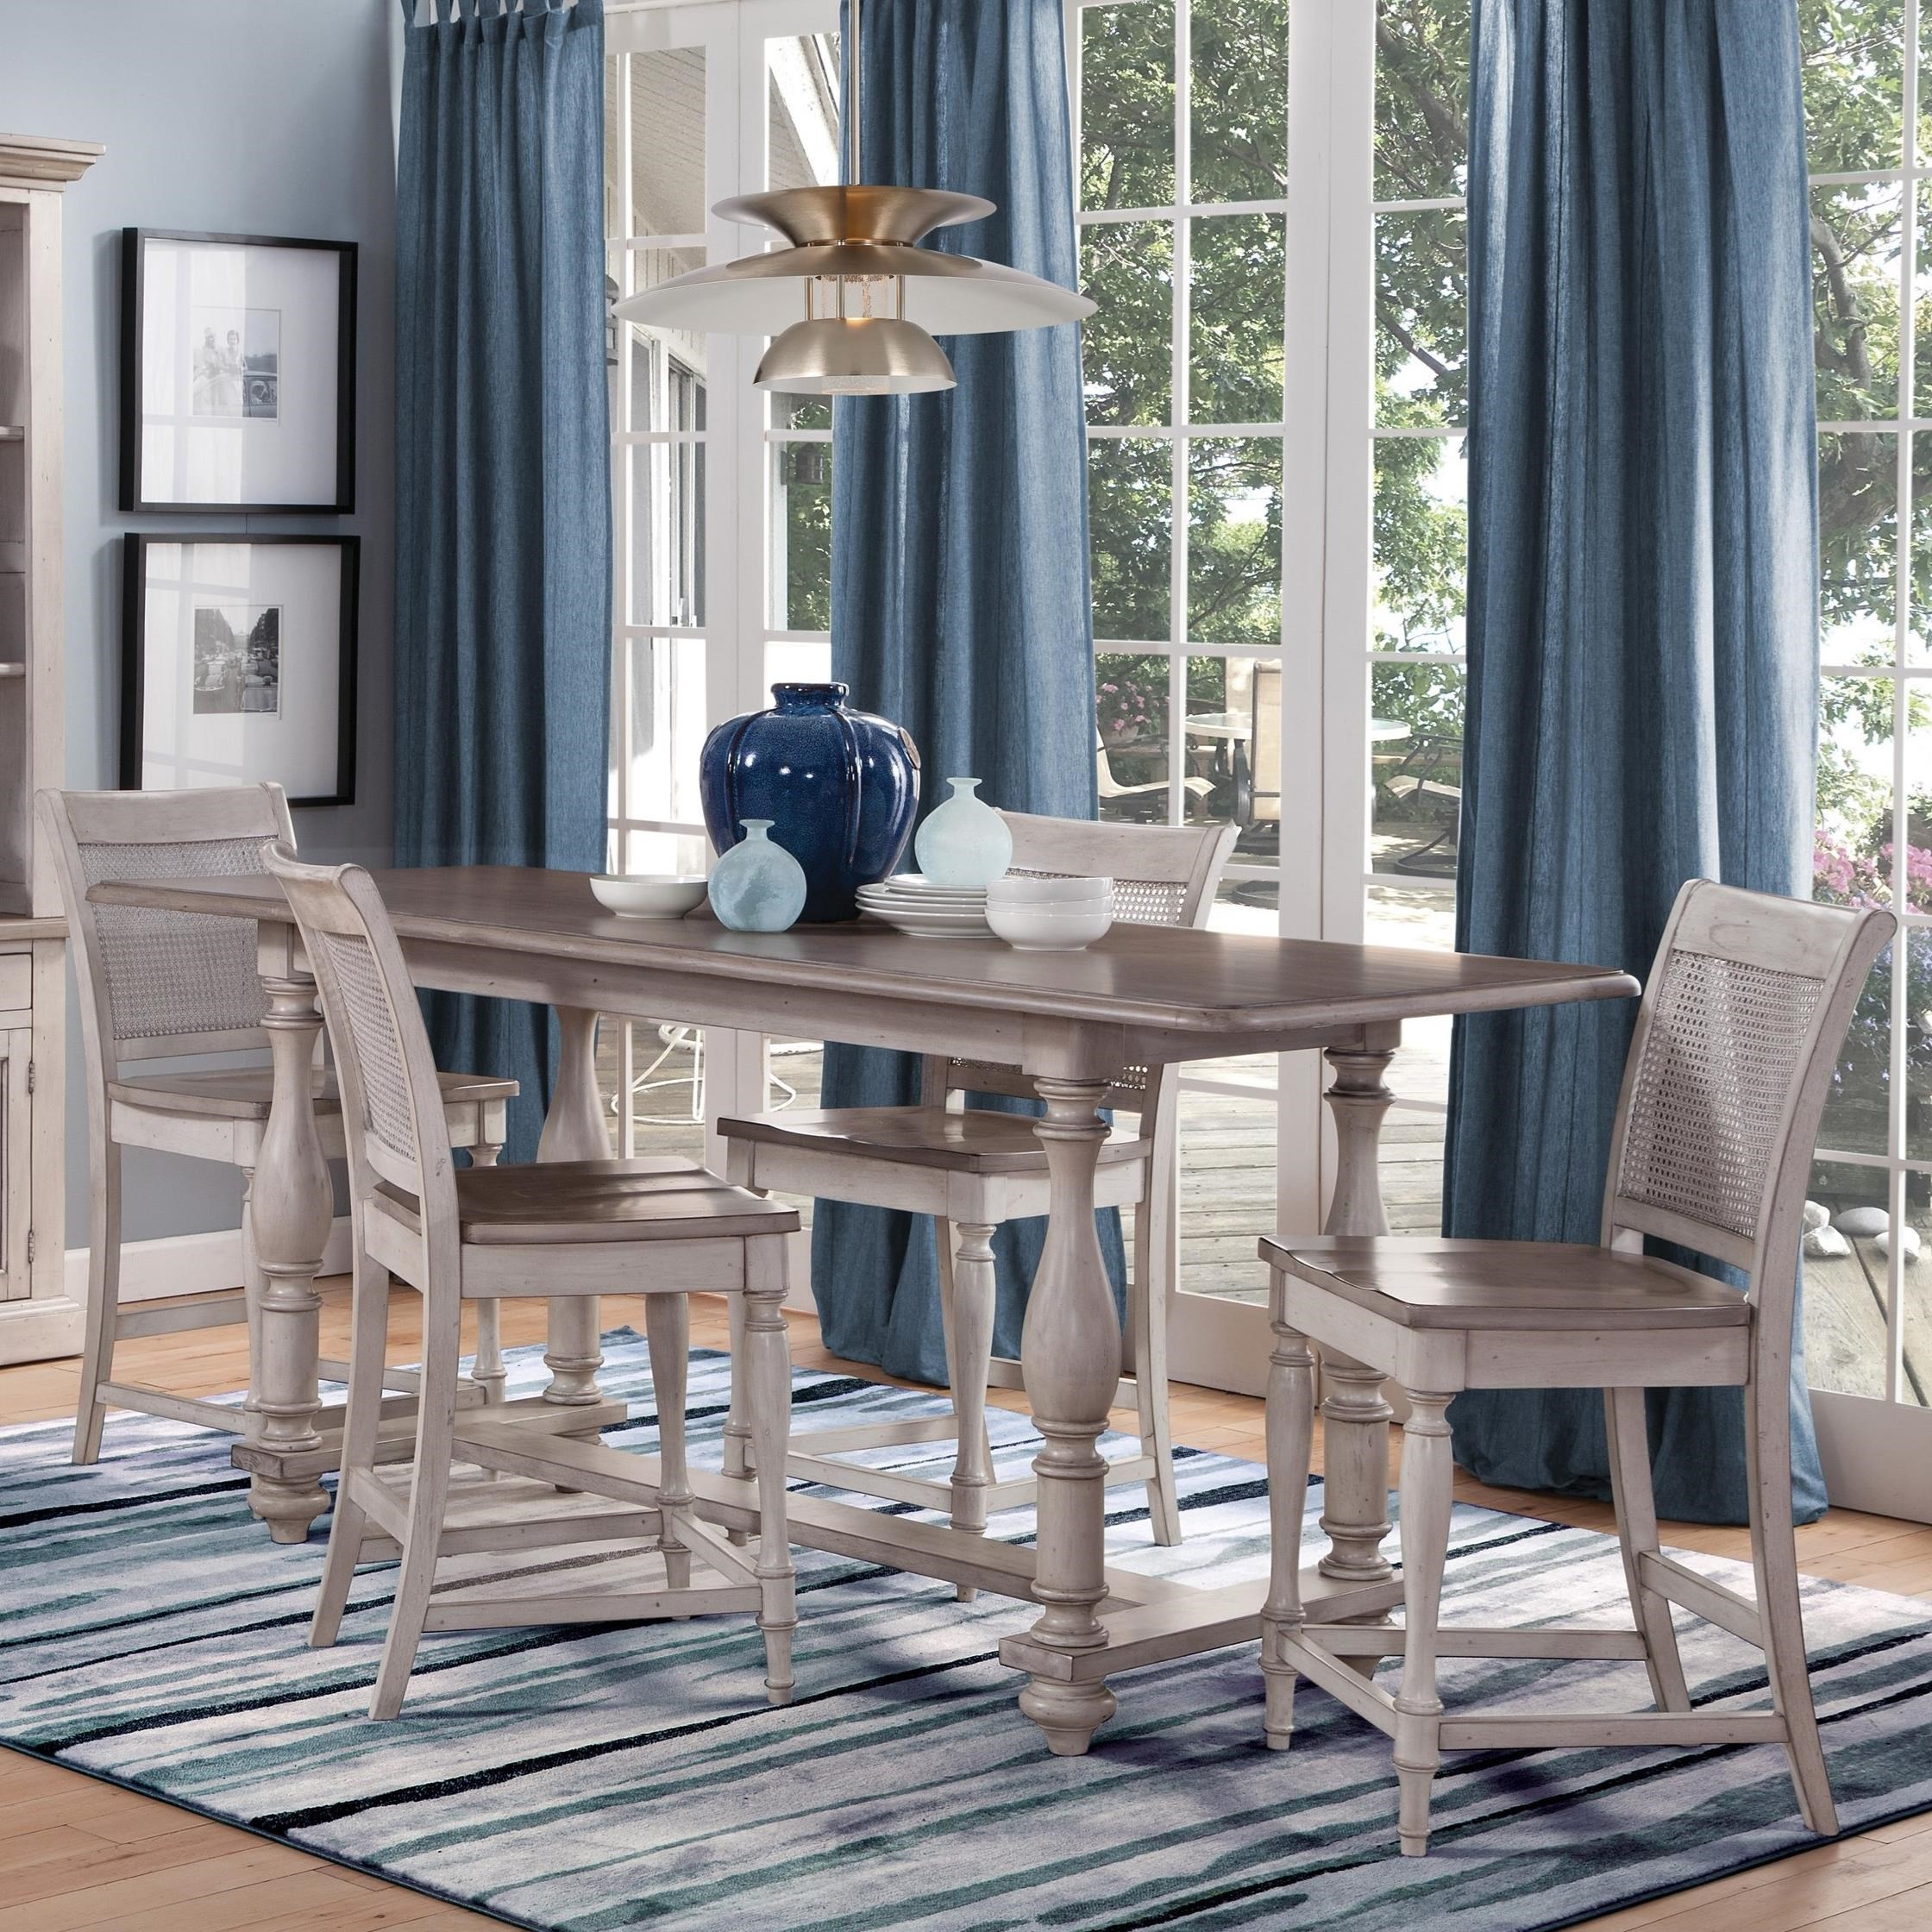 Westwood Village 5-Piece Counter Height Dining Set by Sunny Designs at Suburban Furniture